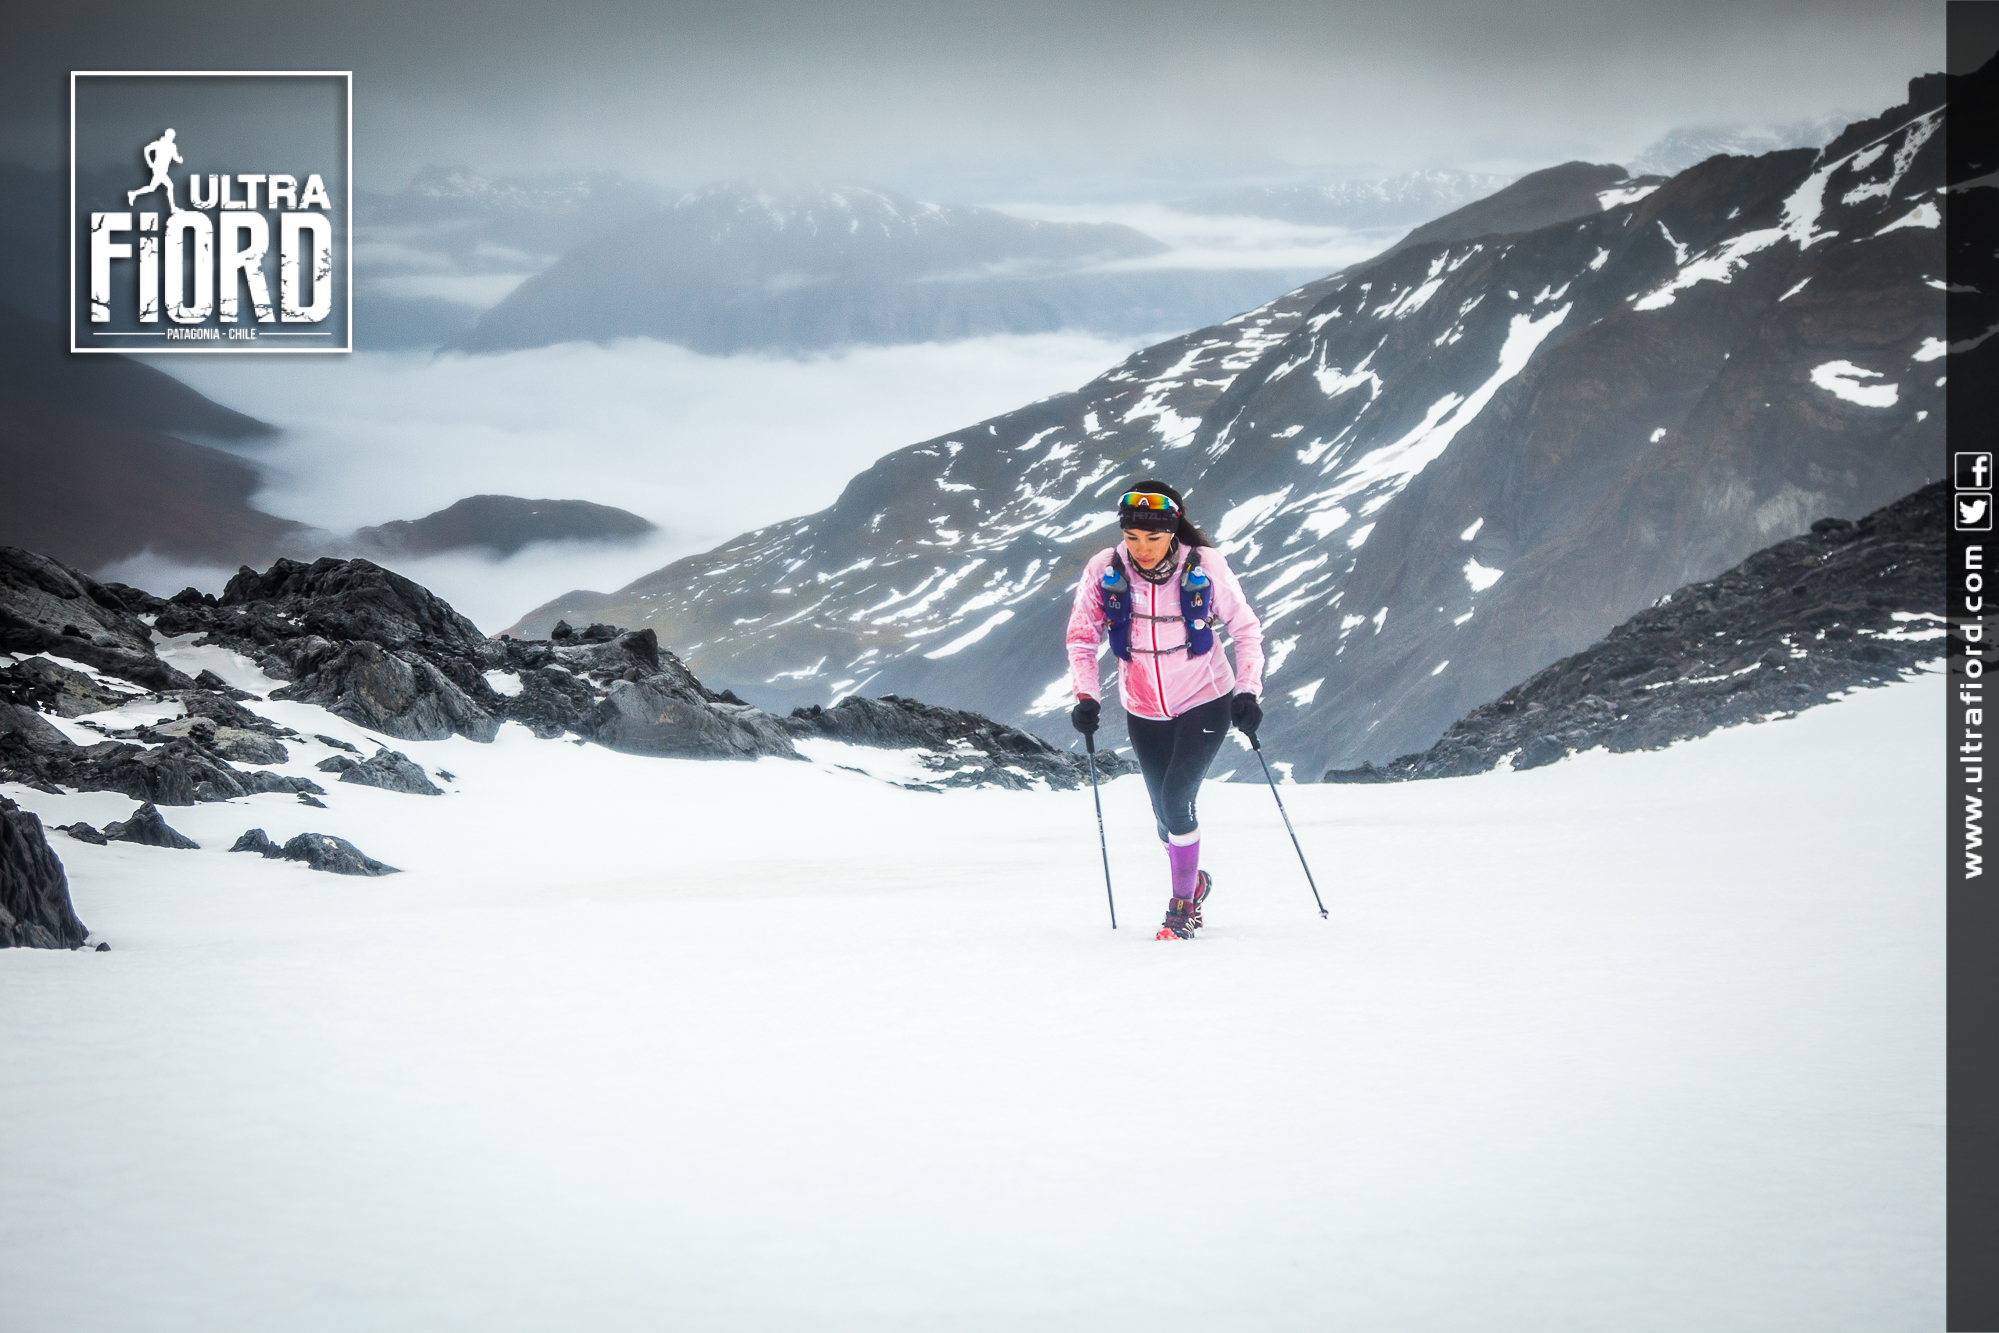 Ultima Esperanza, Patagonia, Chile, Ultra Trail Running, Ultra Fiord 2015, Veronica Bravo